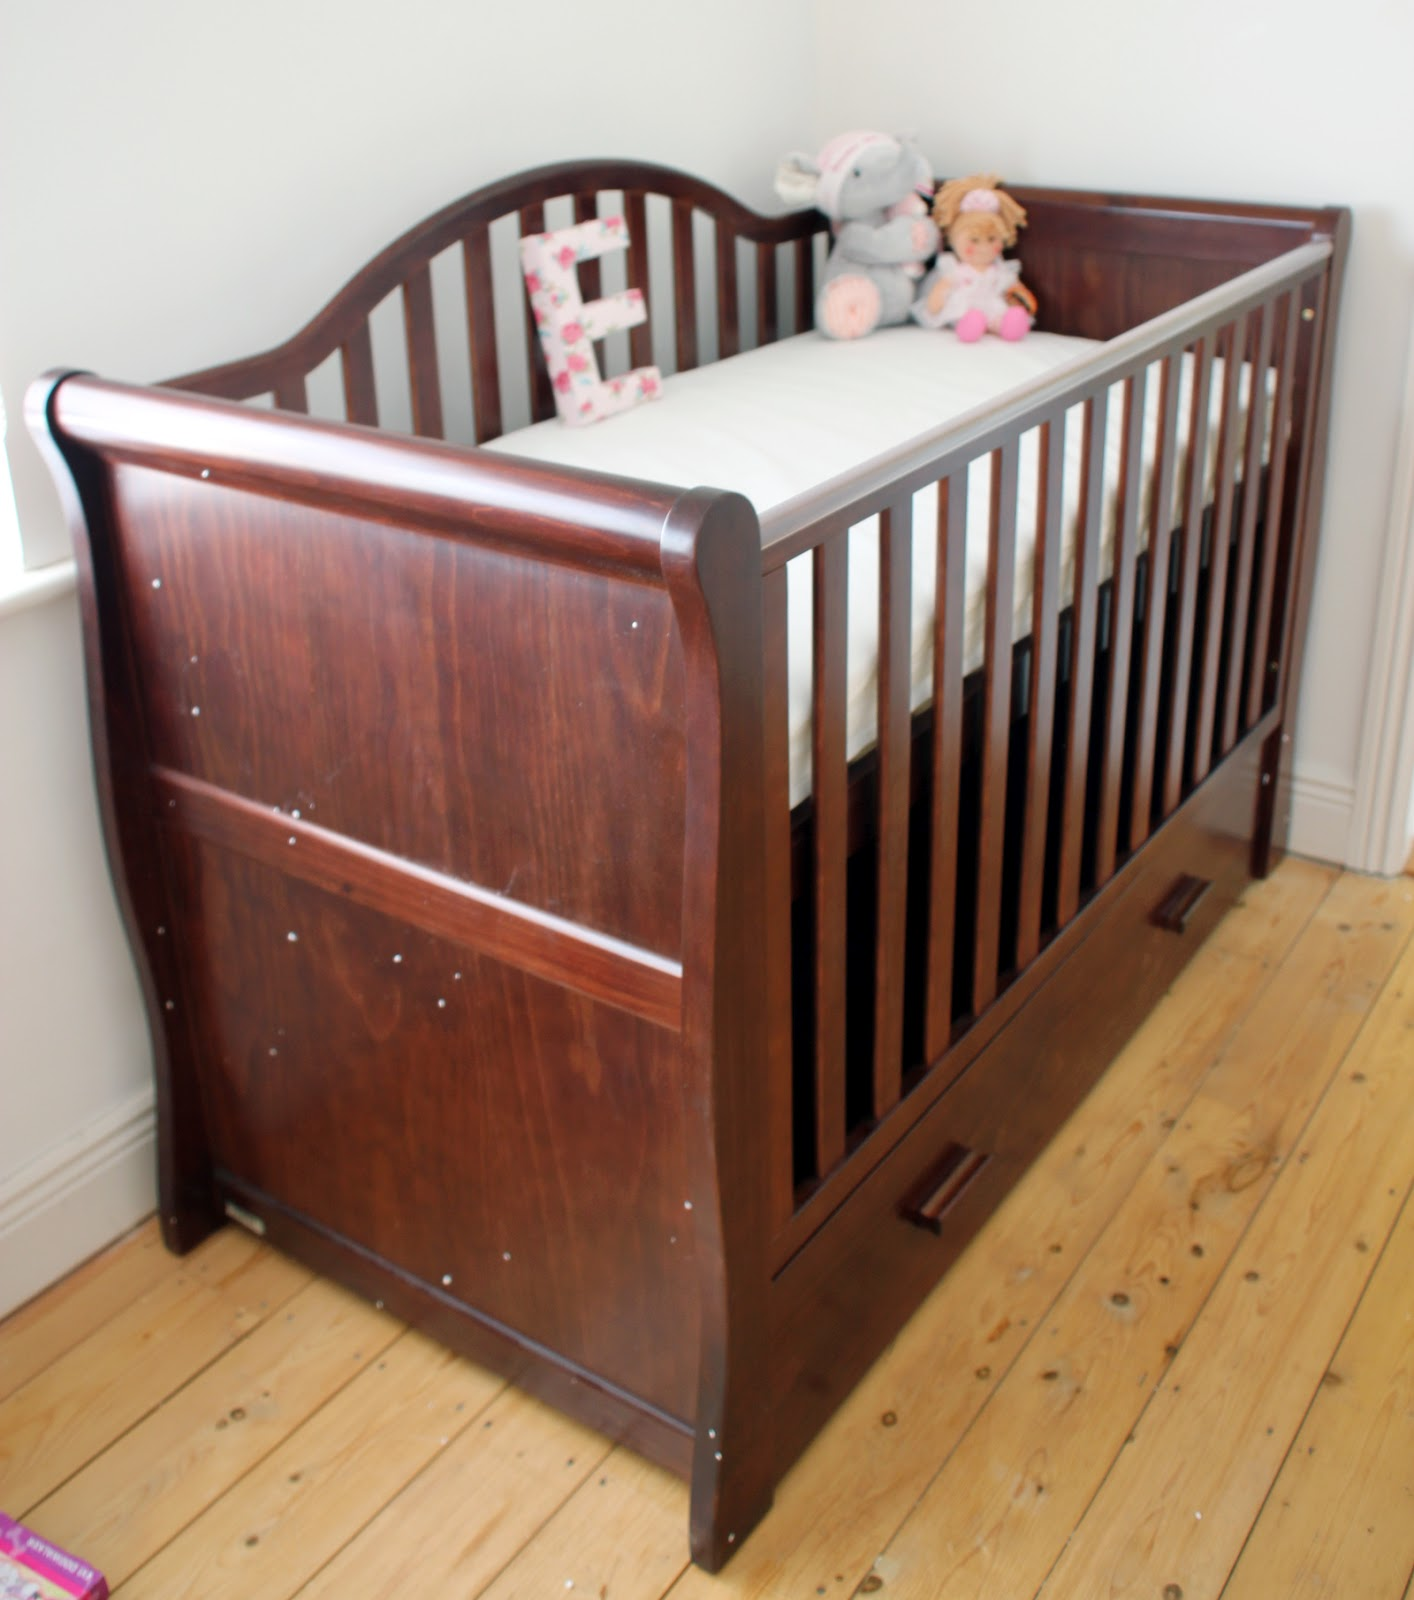 Baby bed like car seat - We Also Got All Of Her Bedding Which Doesn T Arrive Till Thursday Her Stroller And Carseat I Really Can T Wait To Set Up Her Nursery Area Make Her Bed